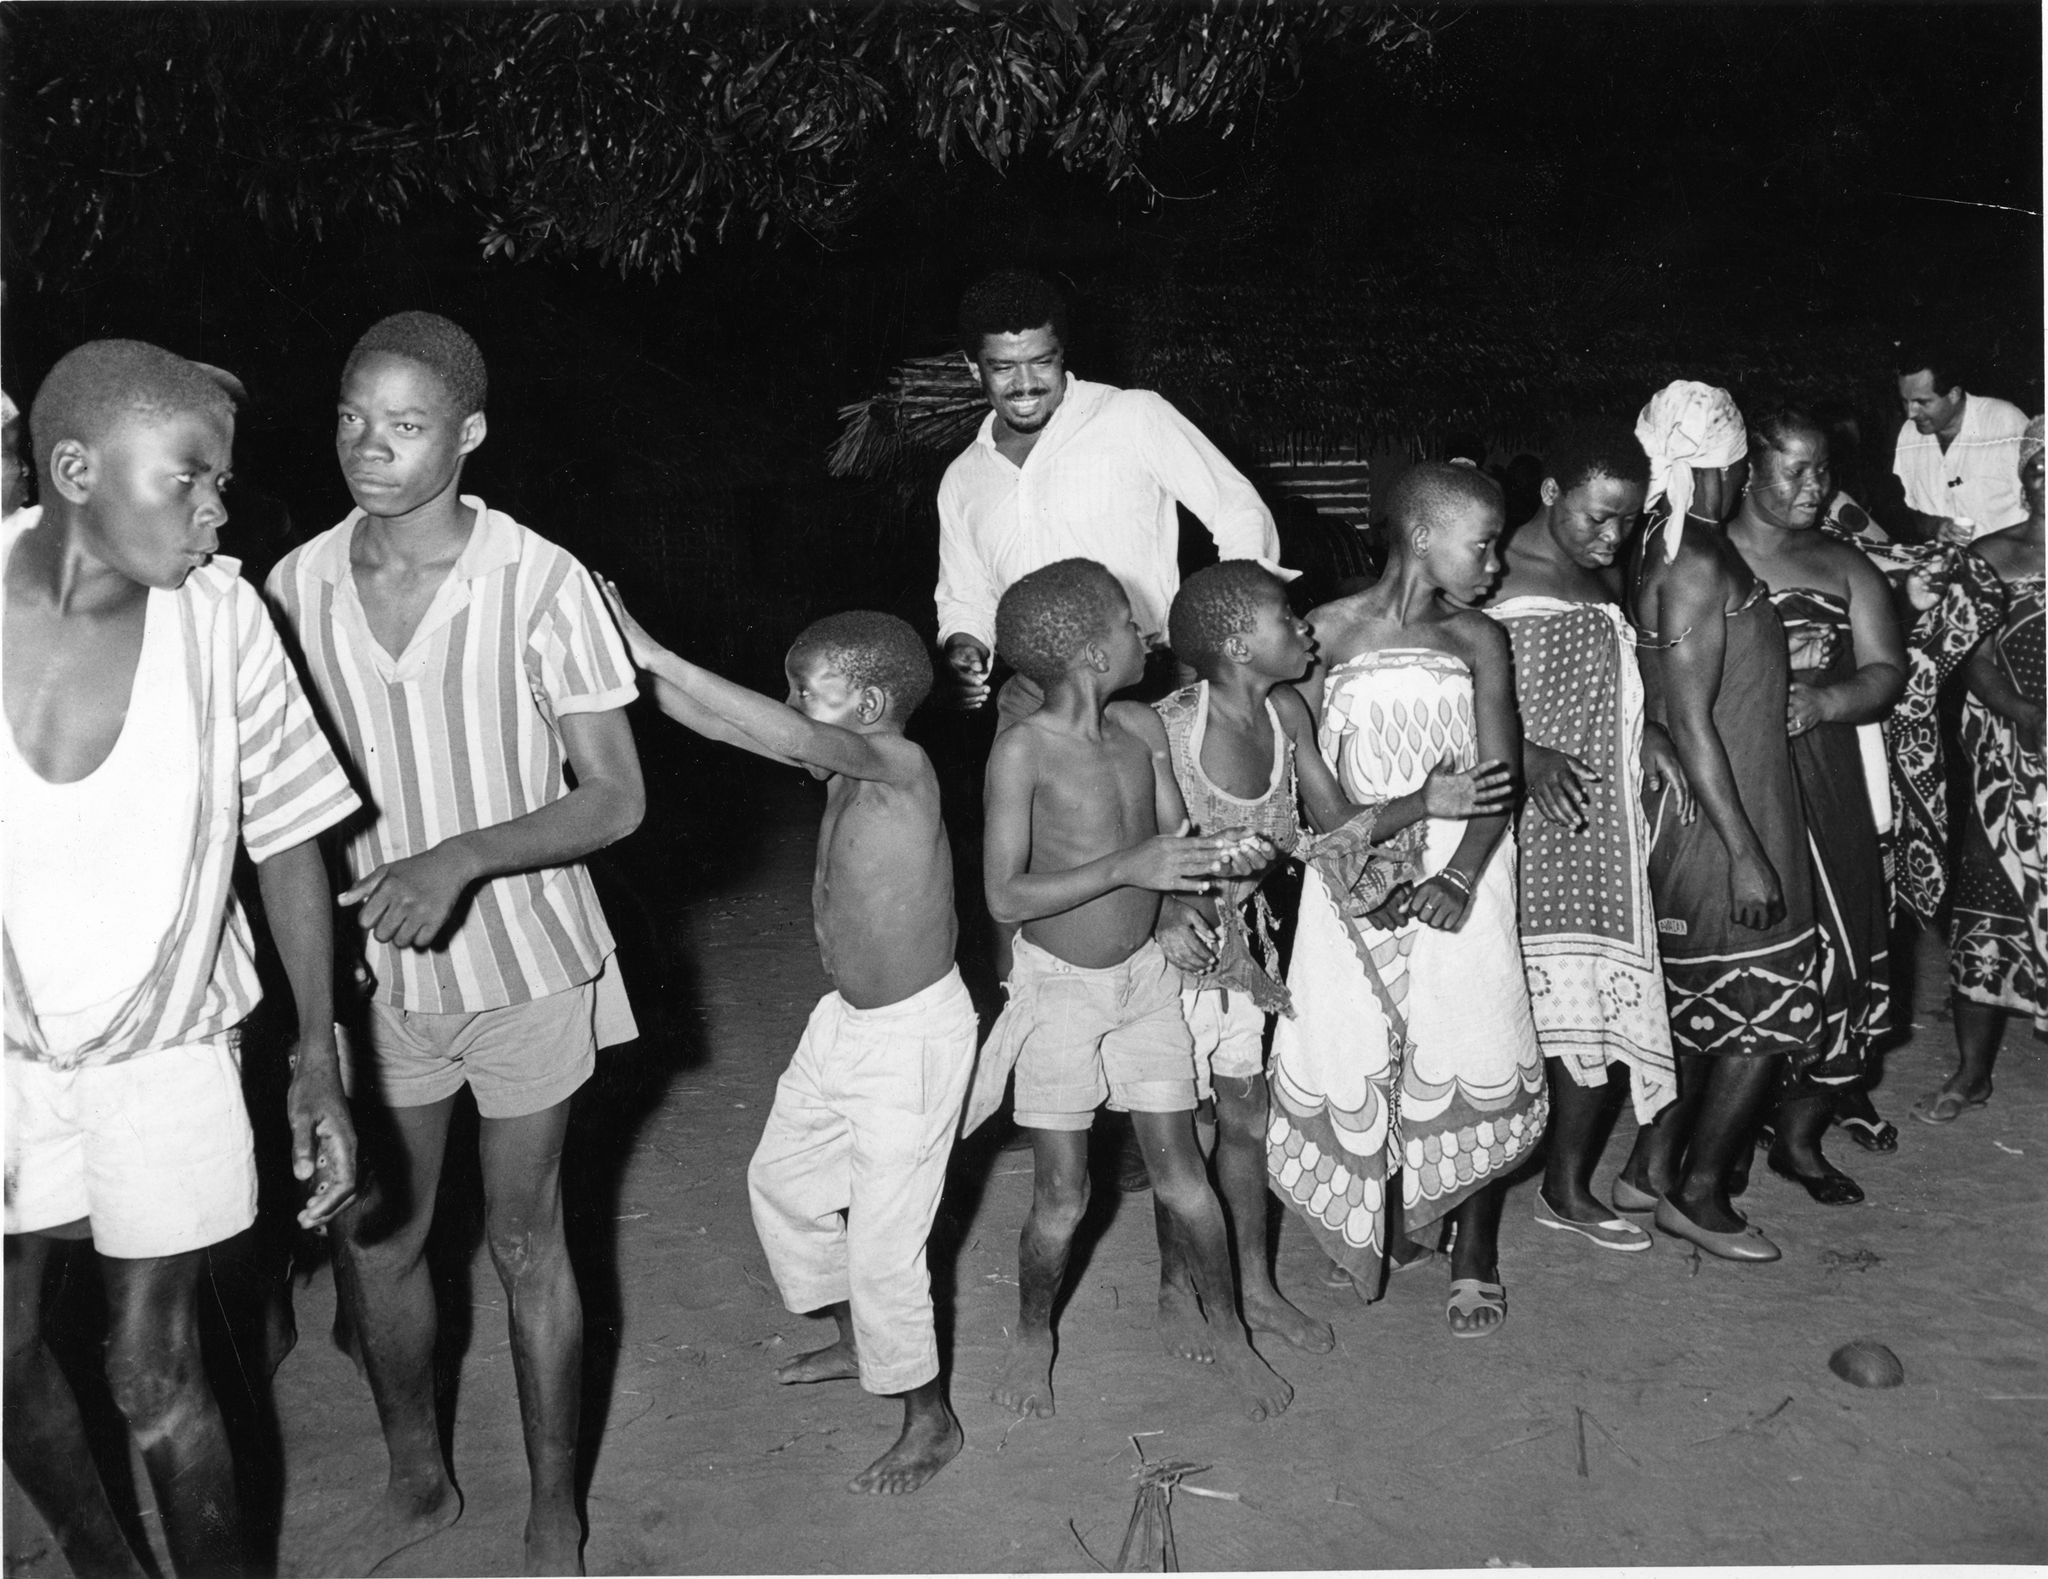 alvin-ailey-with-women-and-children-of-the-makonde-tribe-in-africa-1967-photo-courtesy-of-ailey-archives-1556818835.jpg